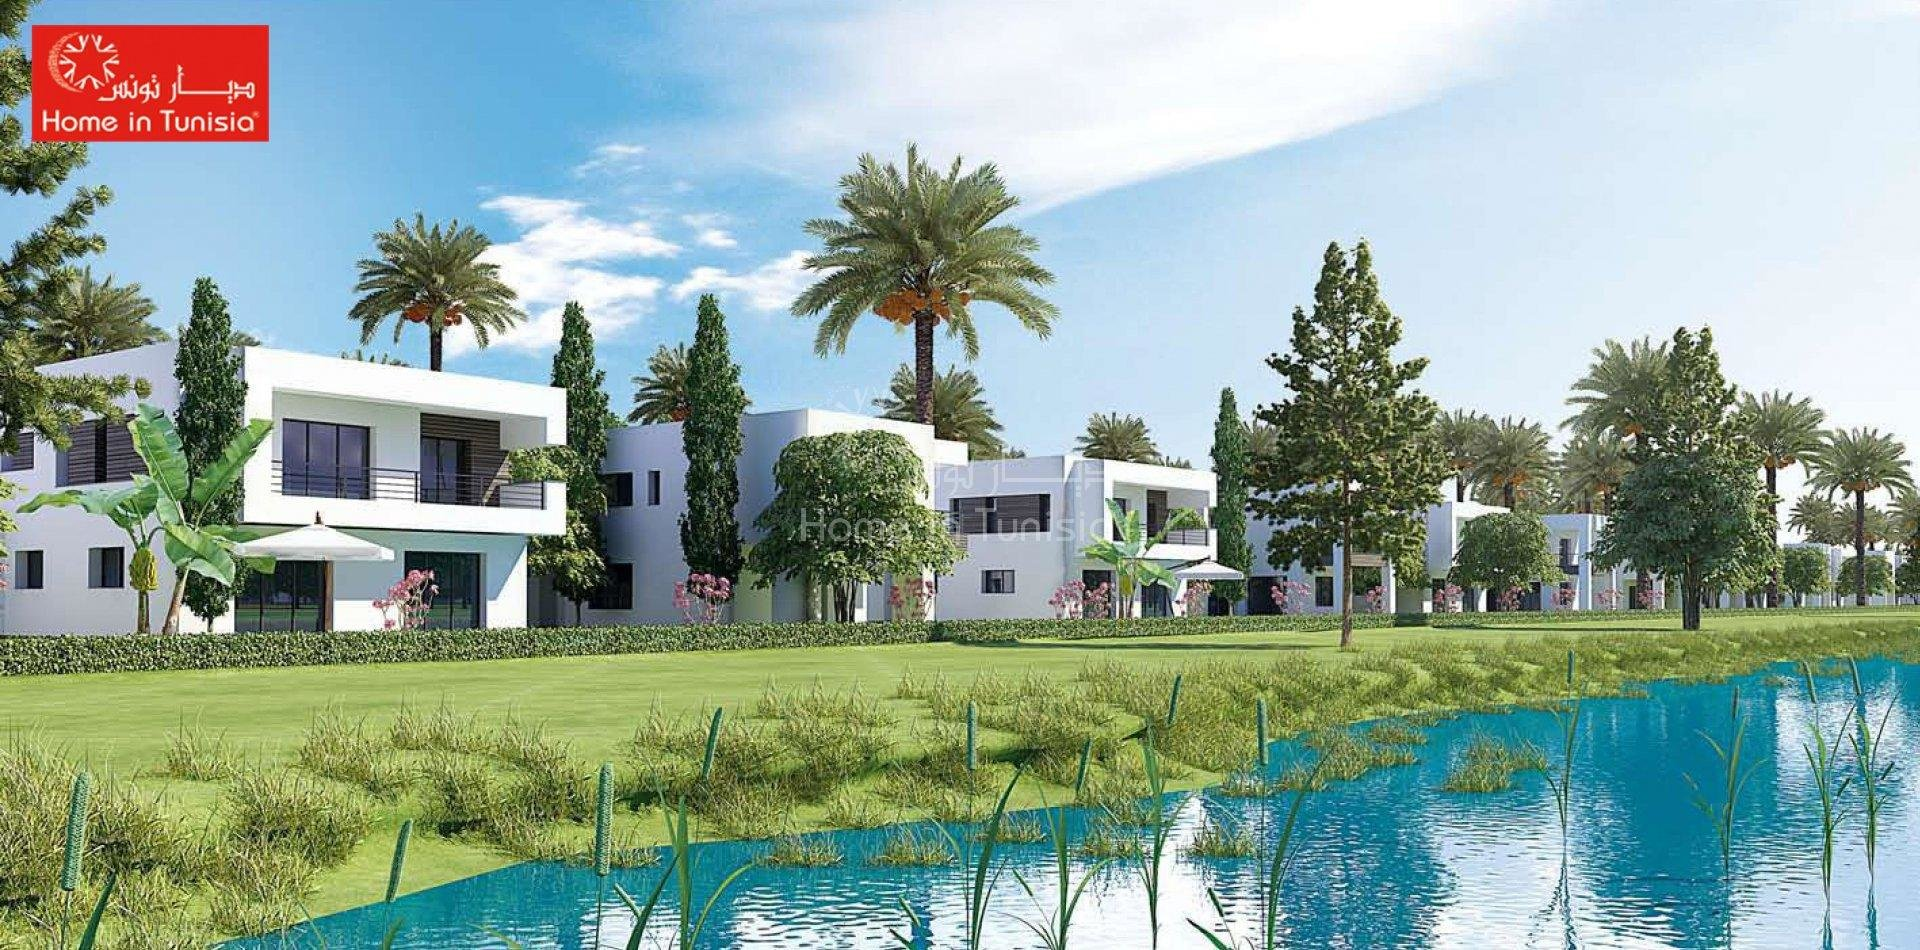 Tunis Bay residential golf villa Oceanos secluded 3 bedrooms terrace garden private pool